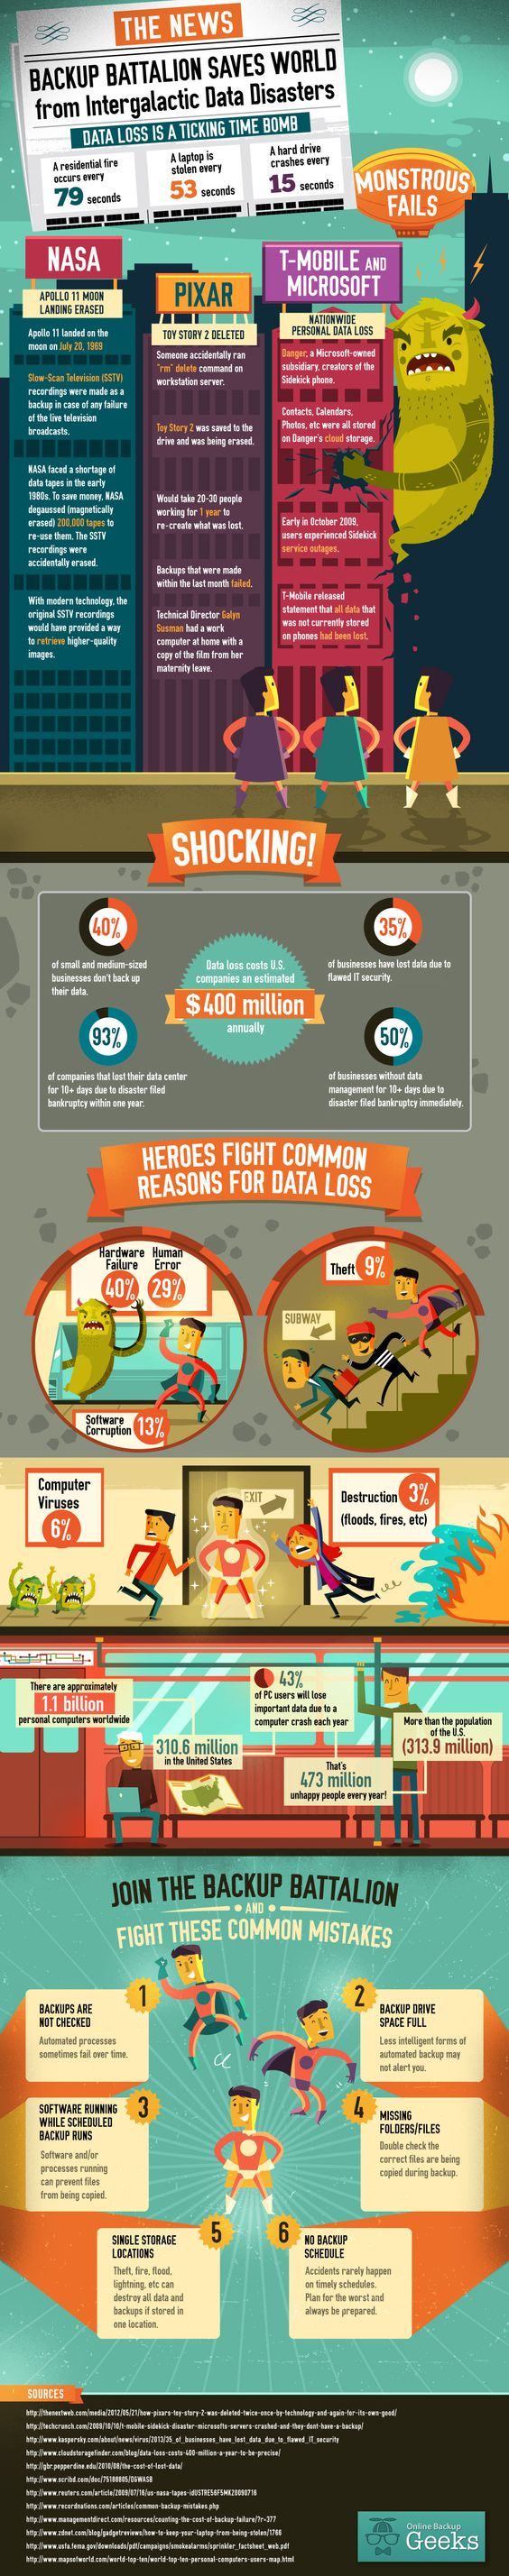 Backup battalion saves world from intergalactic data disasters #infographic